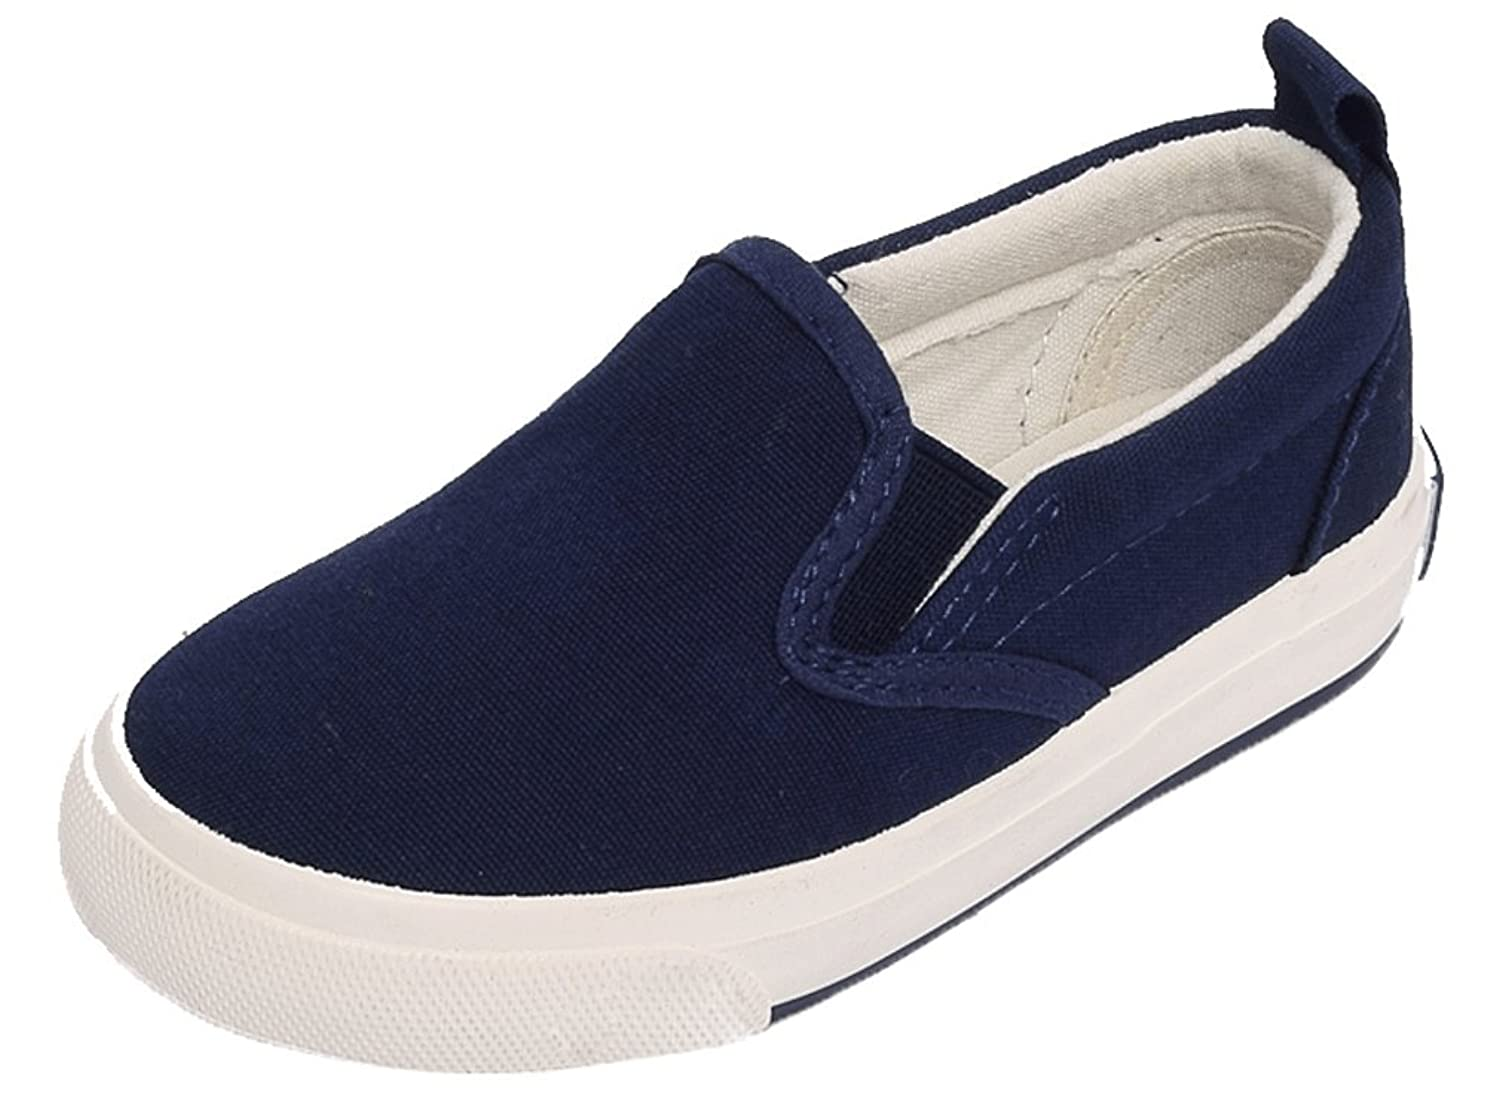 Pointss Unisex Child Pure Color Loafer Shoes Canvas Boat Shoes Boys' and Girls' Skate Shoes Skateboarding Sneakers Walking Shoes